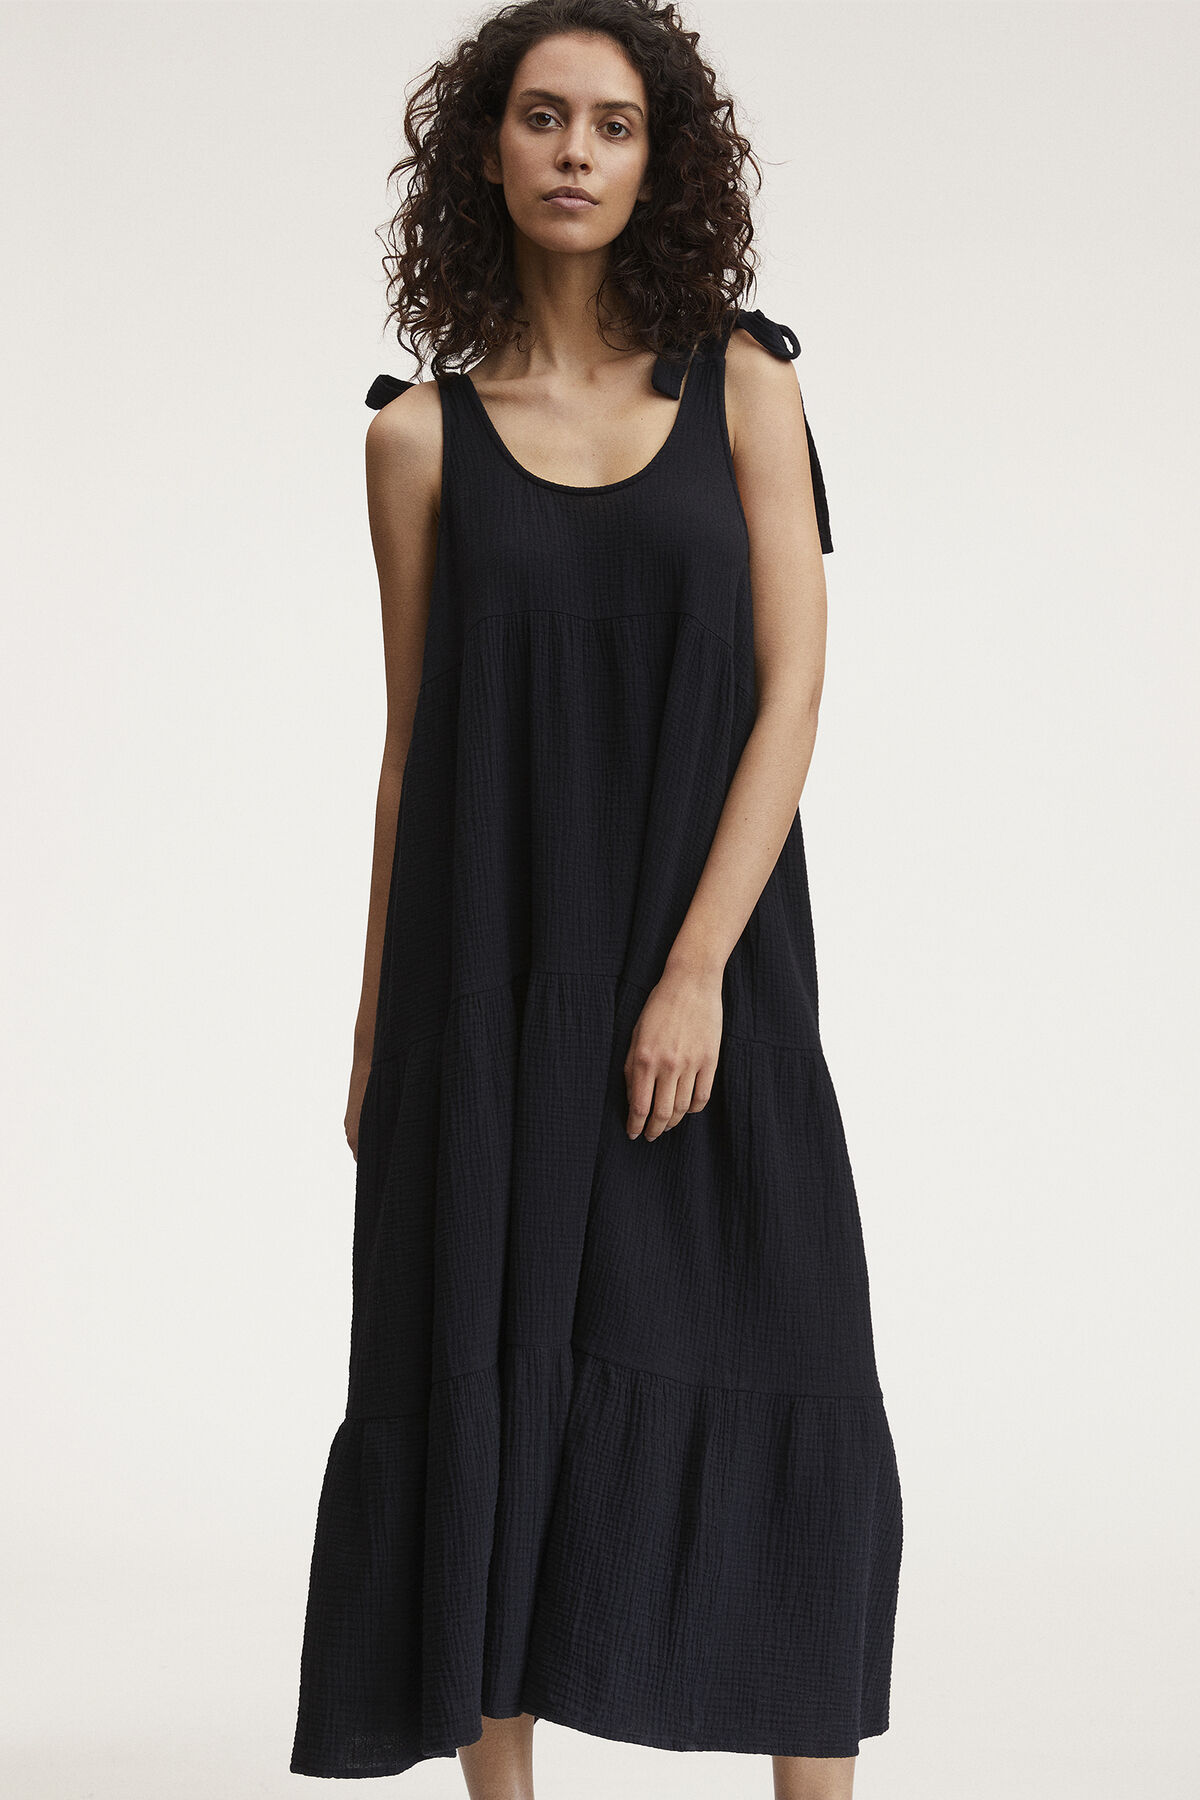 VERONICA DRESS Double Gauze Cotton - Maxi